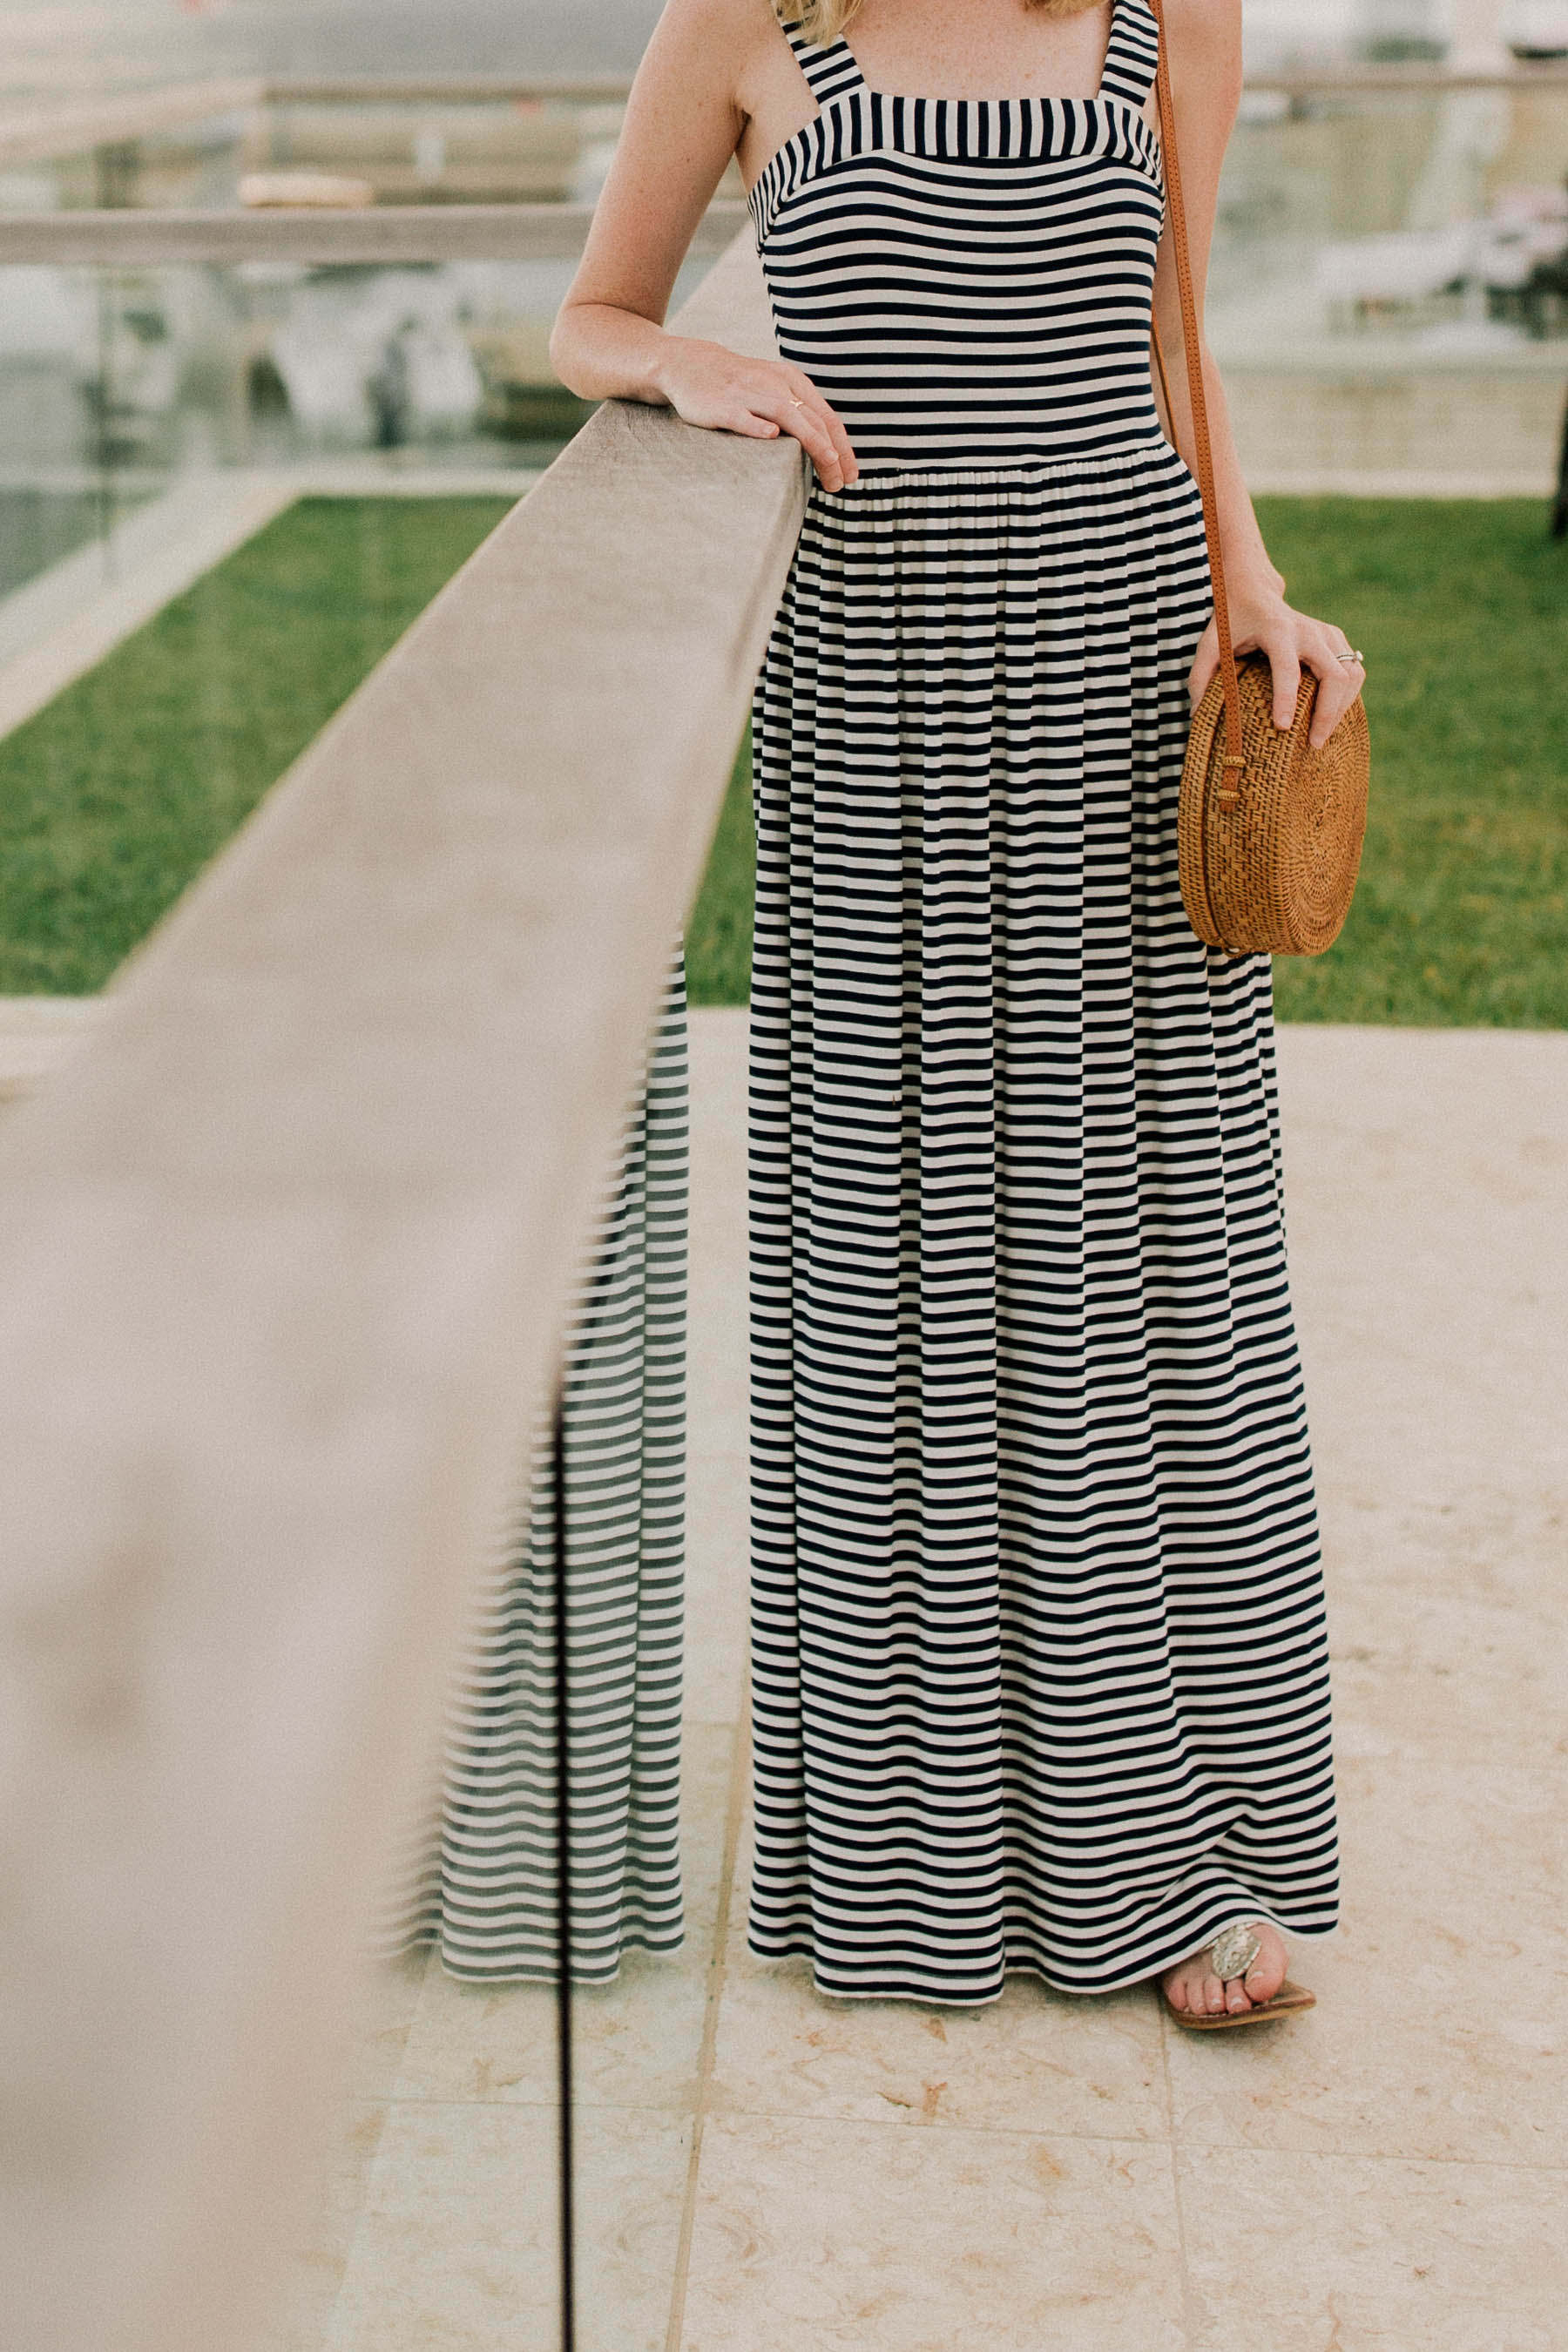 Kelly is wearing a Navy Striped Maxi Dress of Loft and a wove bag in Bermuda